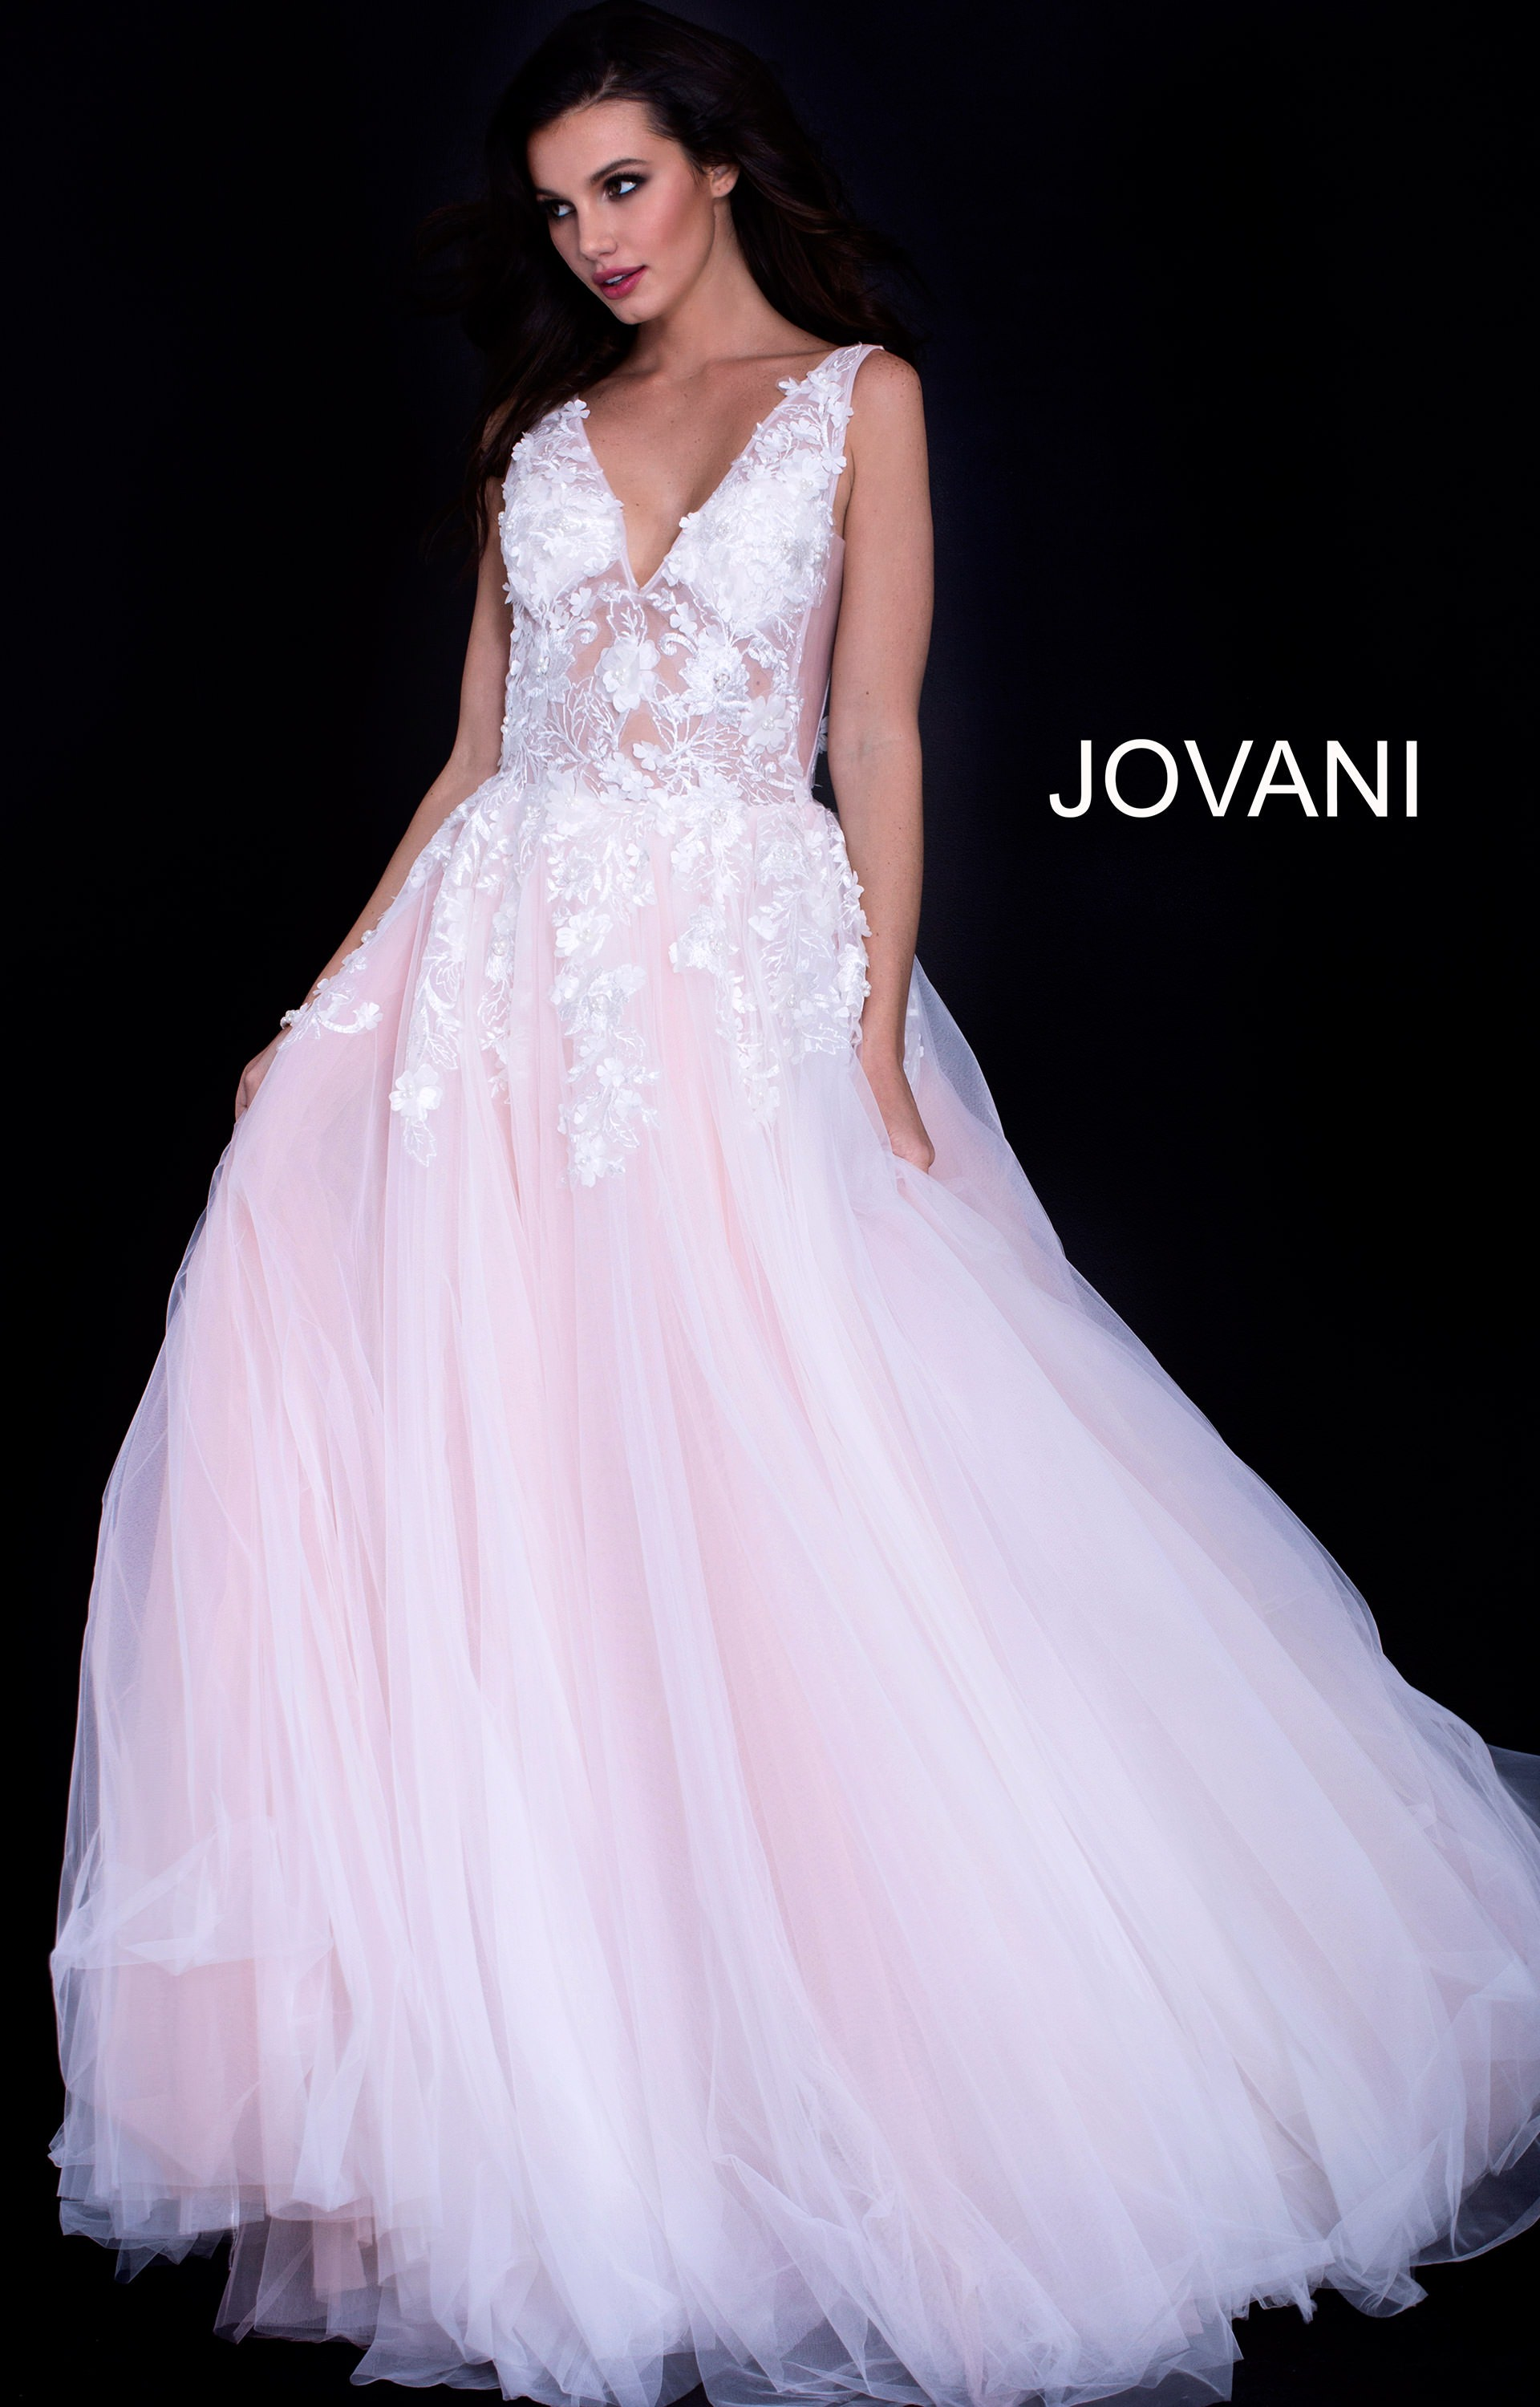 Jovani 55634 - V-Neckline Lace sheer Bodice Tulle Ball Gown Prom Dress